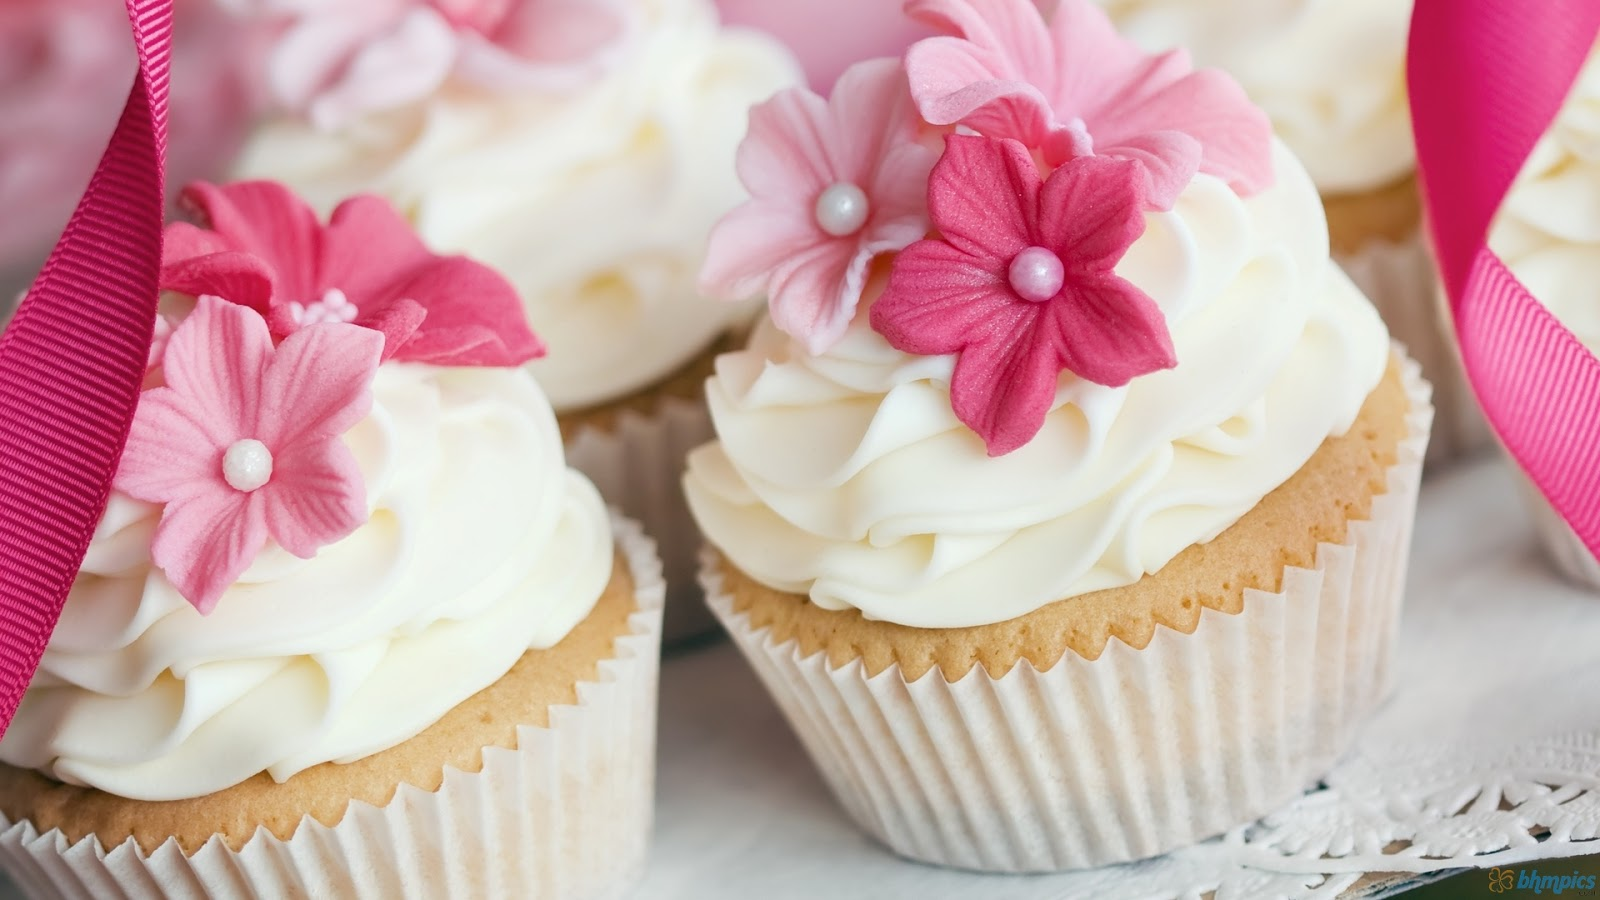 Wedding Pink Cupcakes Wallpaper Wedding Pink Cupcakes Wallpaper 1600x900